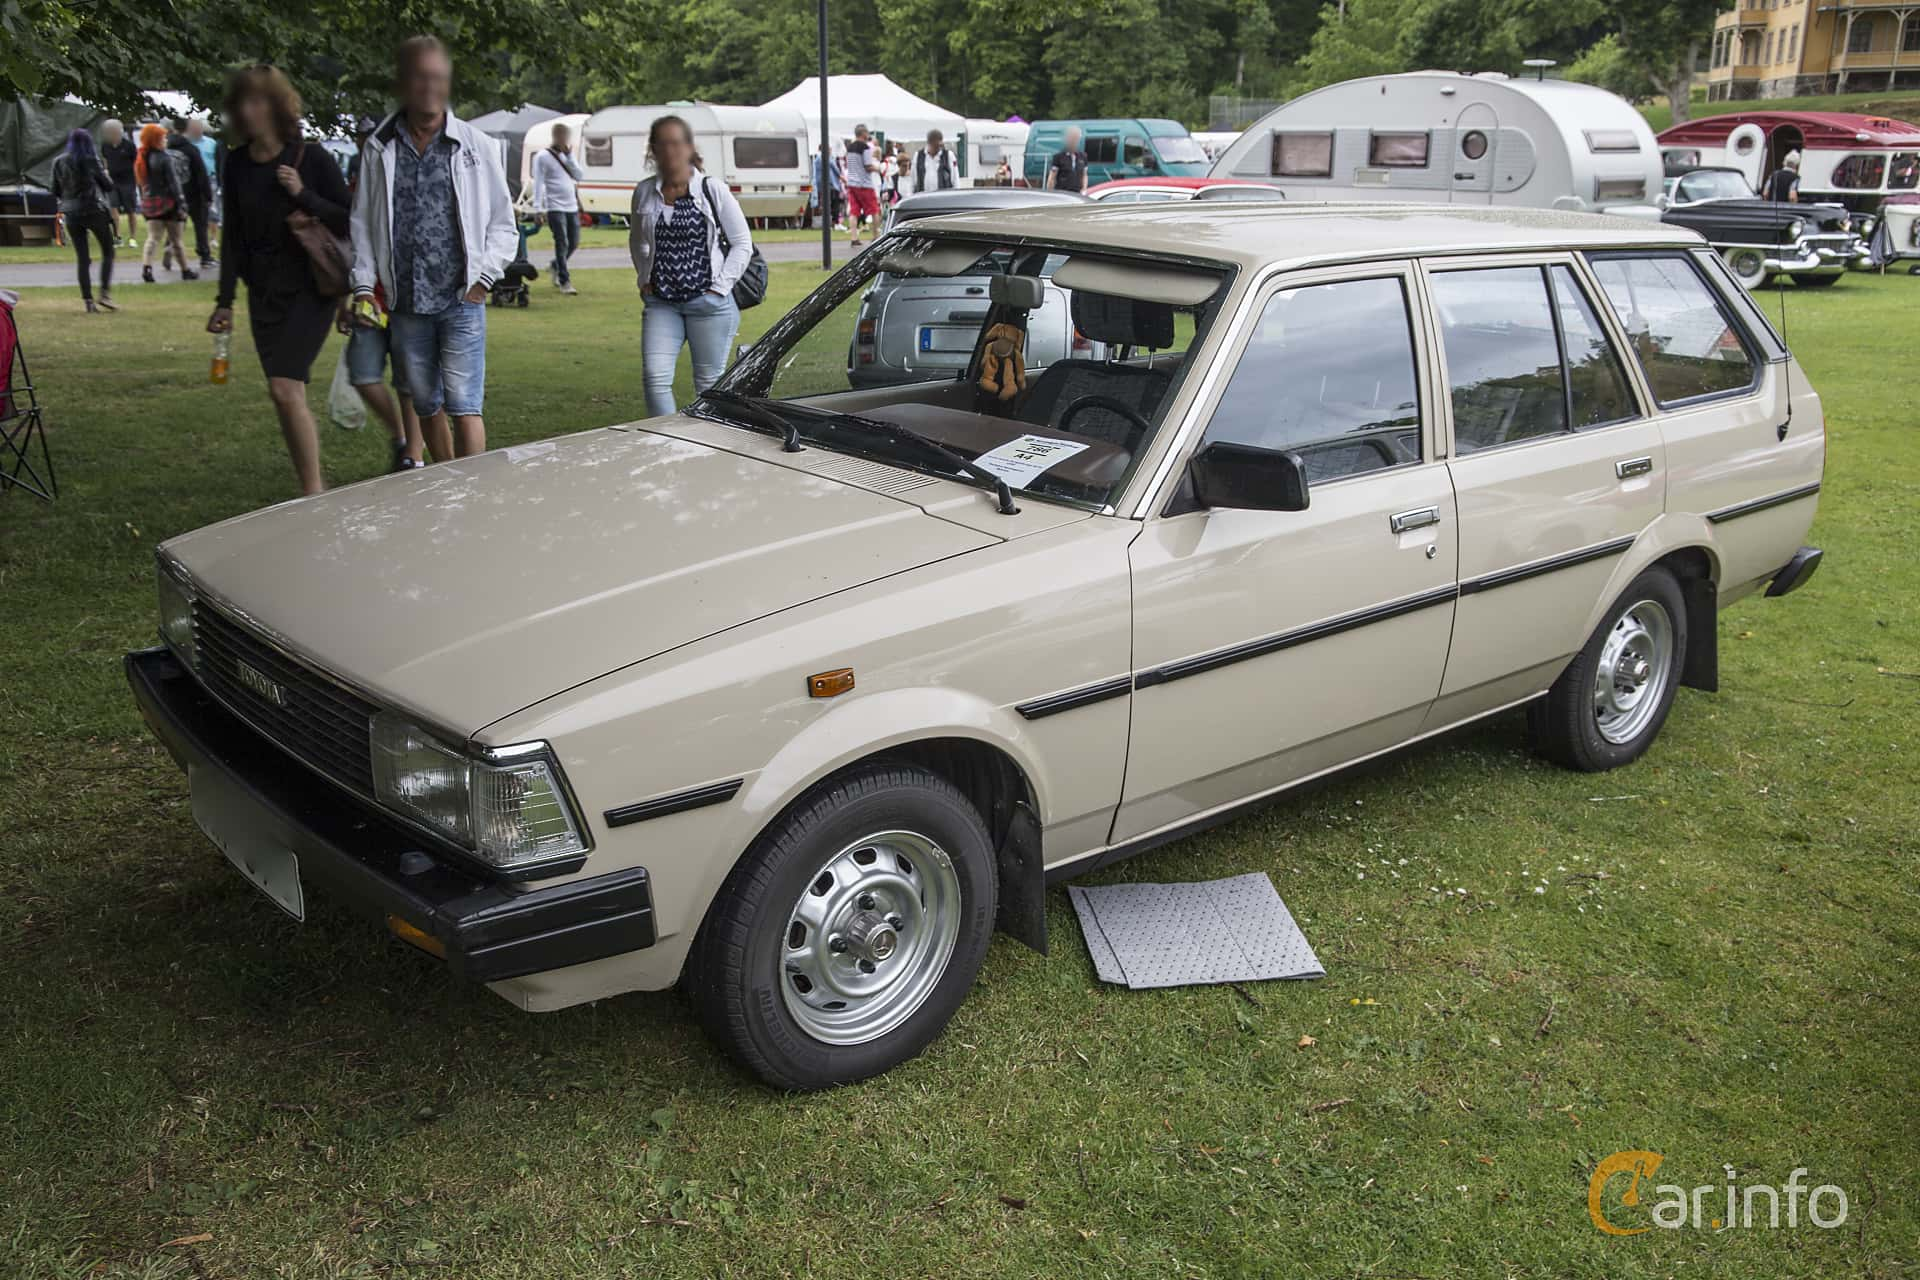 toyota corolla 5 door station wagon 1 3 manual 60hp 1982. Black Bedroom Furniture Sets. Home Design Ideas